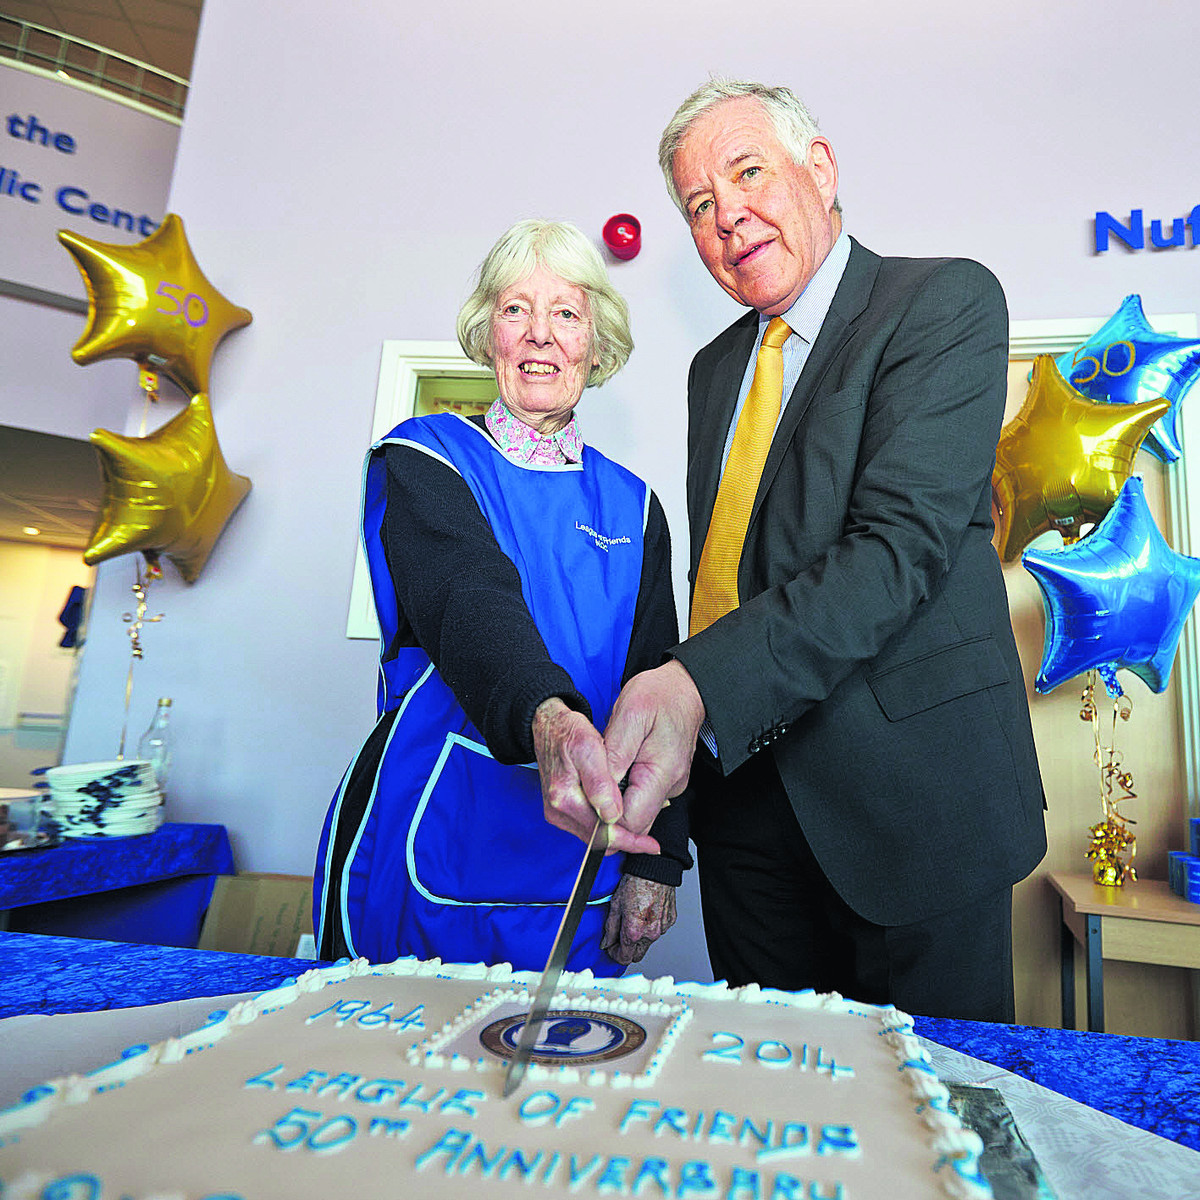 ORIGINS: Volunteer Jean Burley and hospital chief executive Sir Jonathan Michael cut a cake to mark the 50th anniversary of the League of Friends